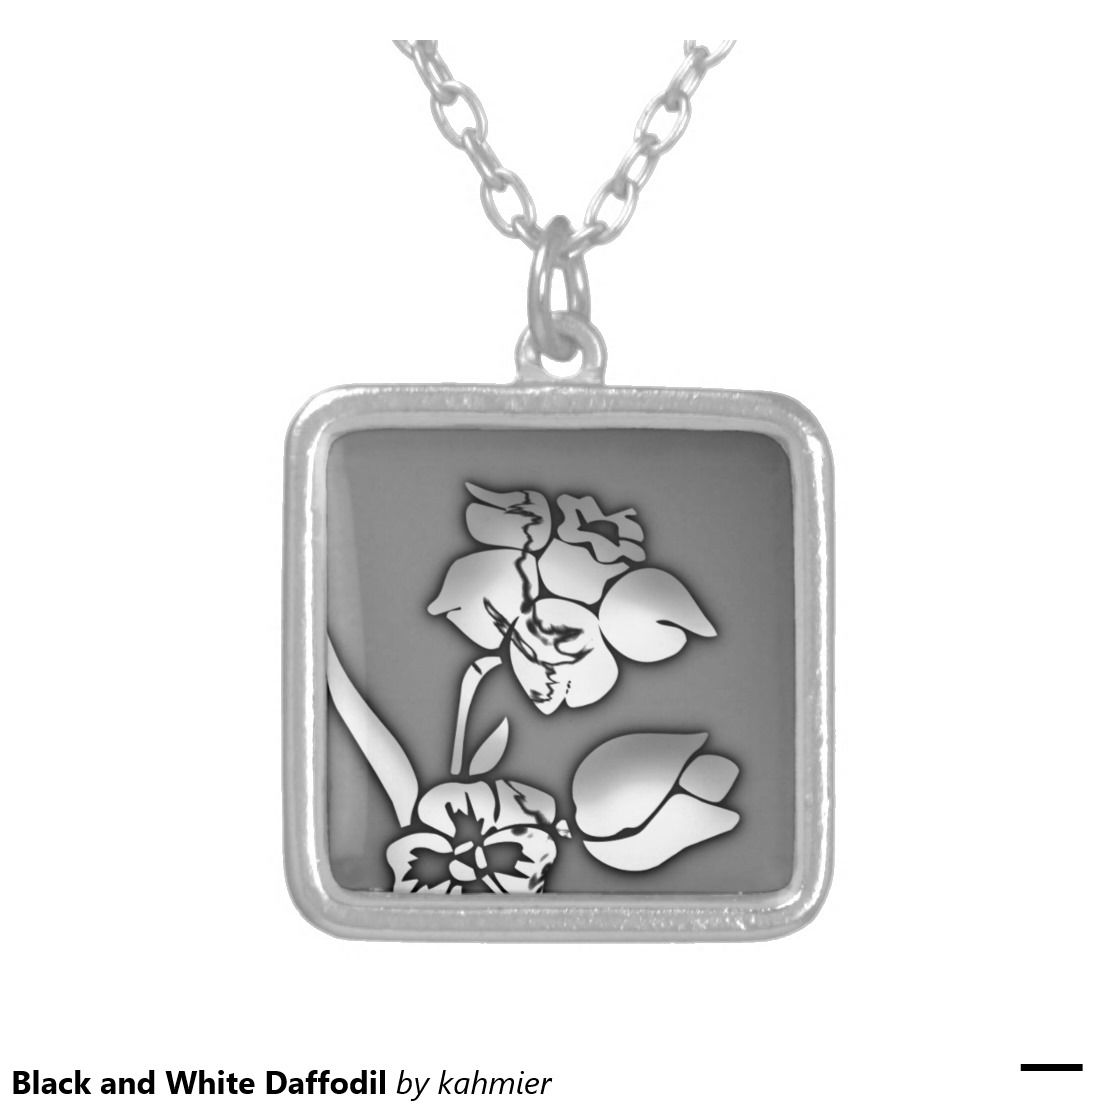 Black and White Daffodil Square Pendant Necklace